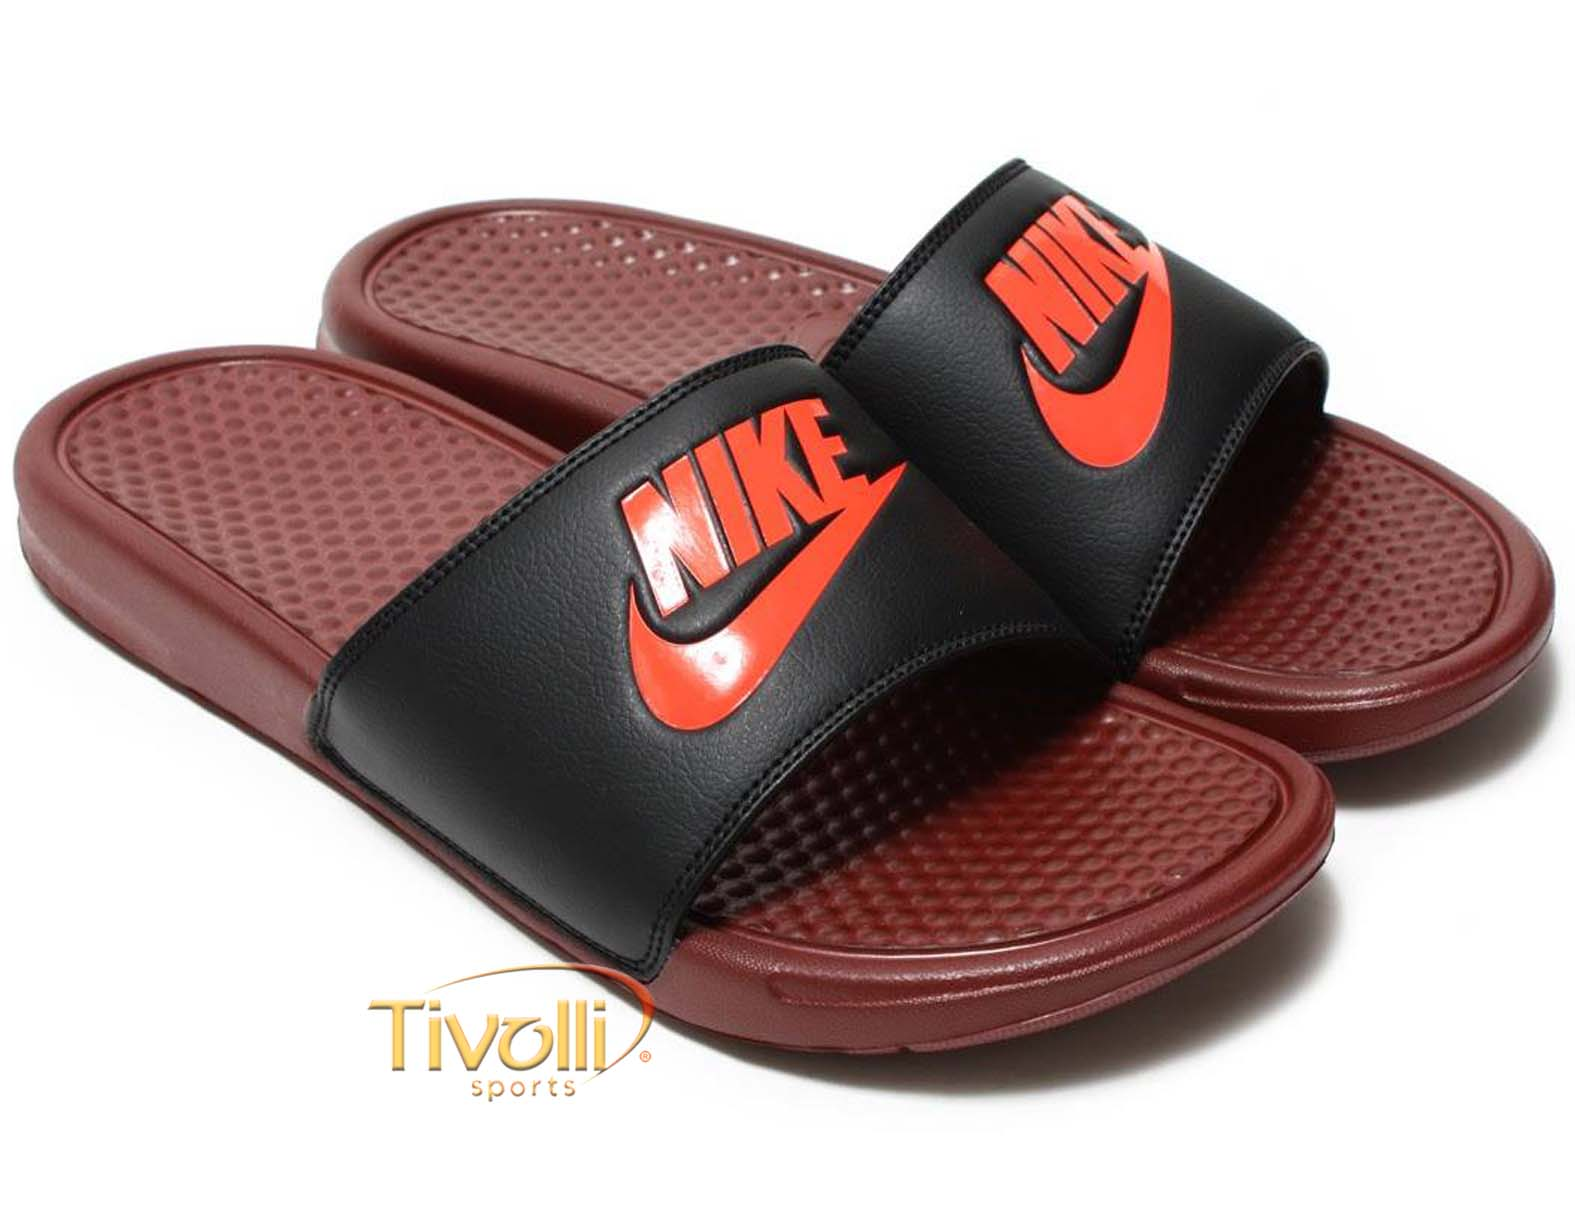 9a848fcc40 Chinelo Nike Benassi Just Do It   Vinho e Preto